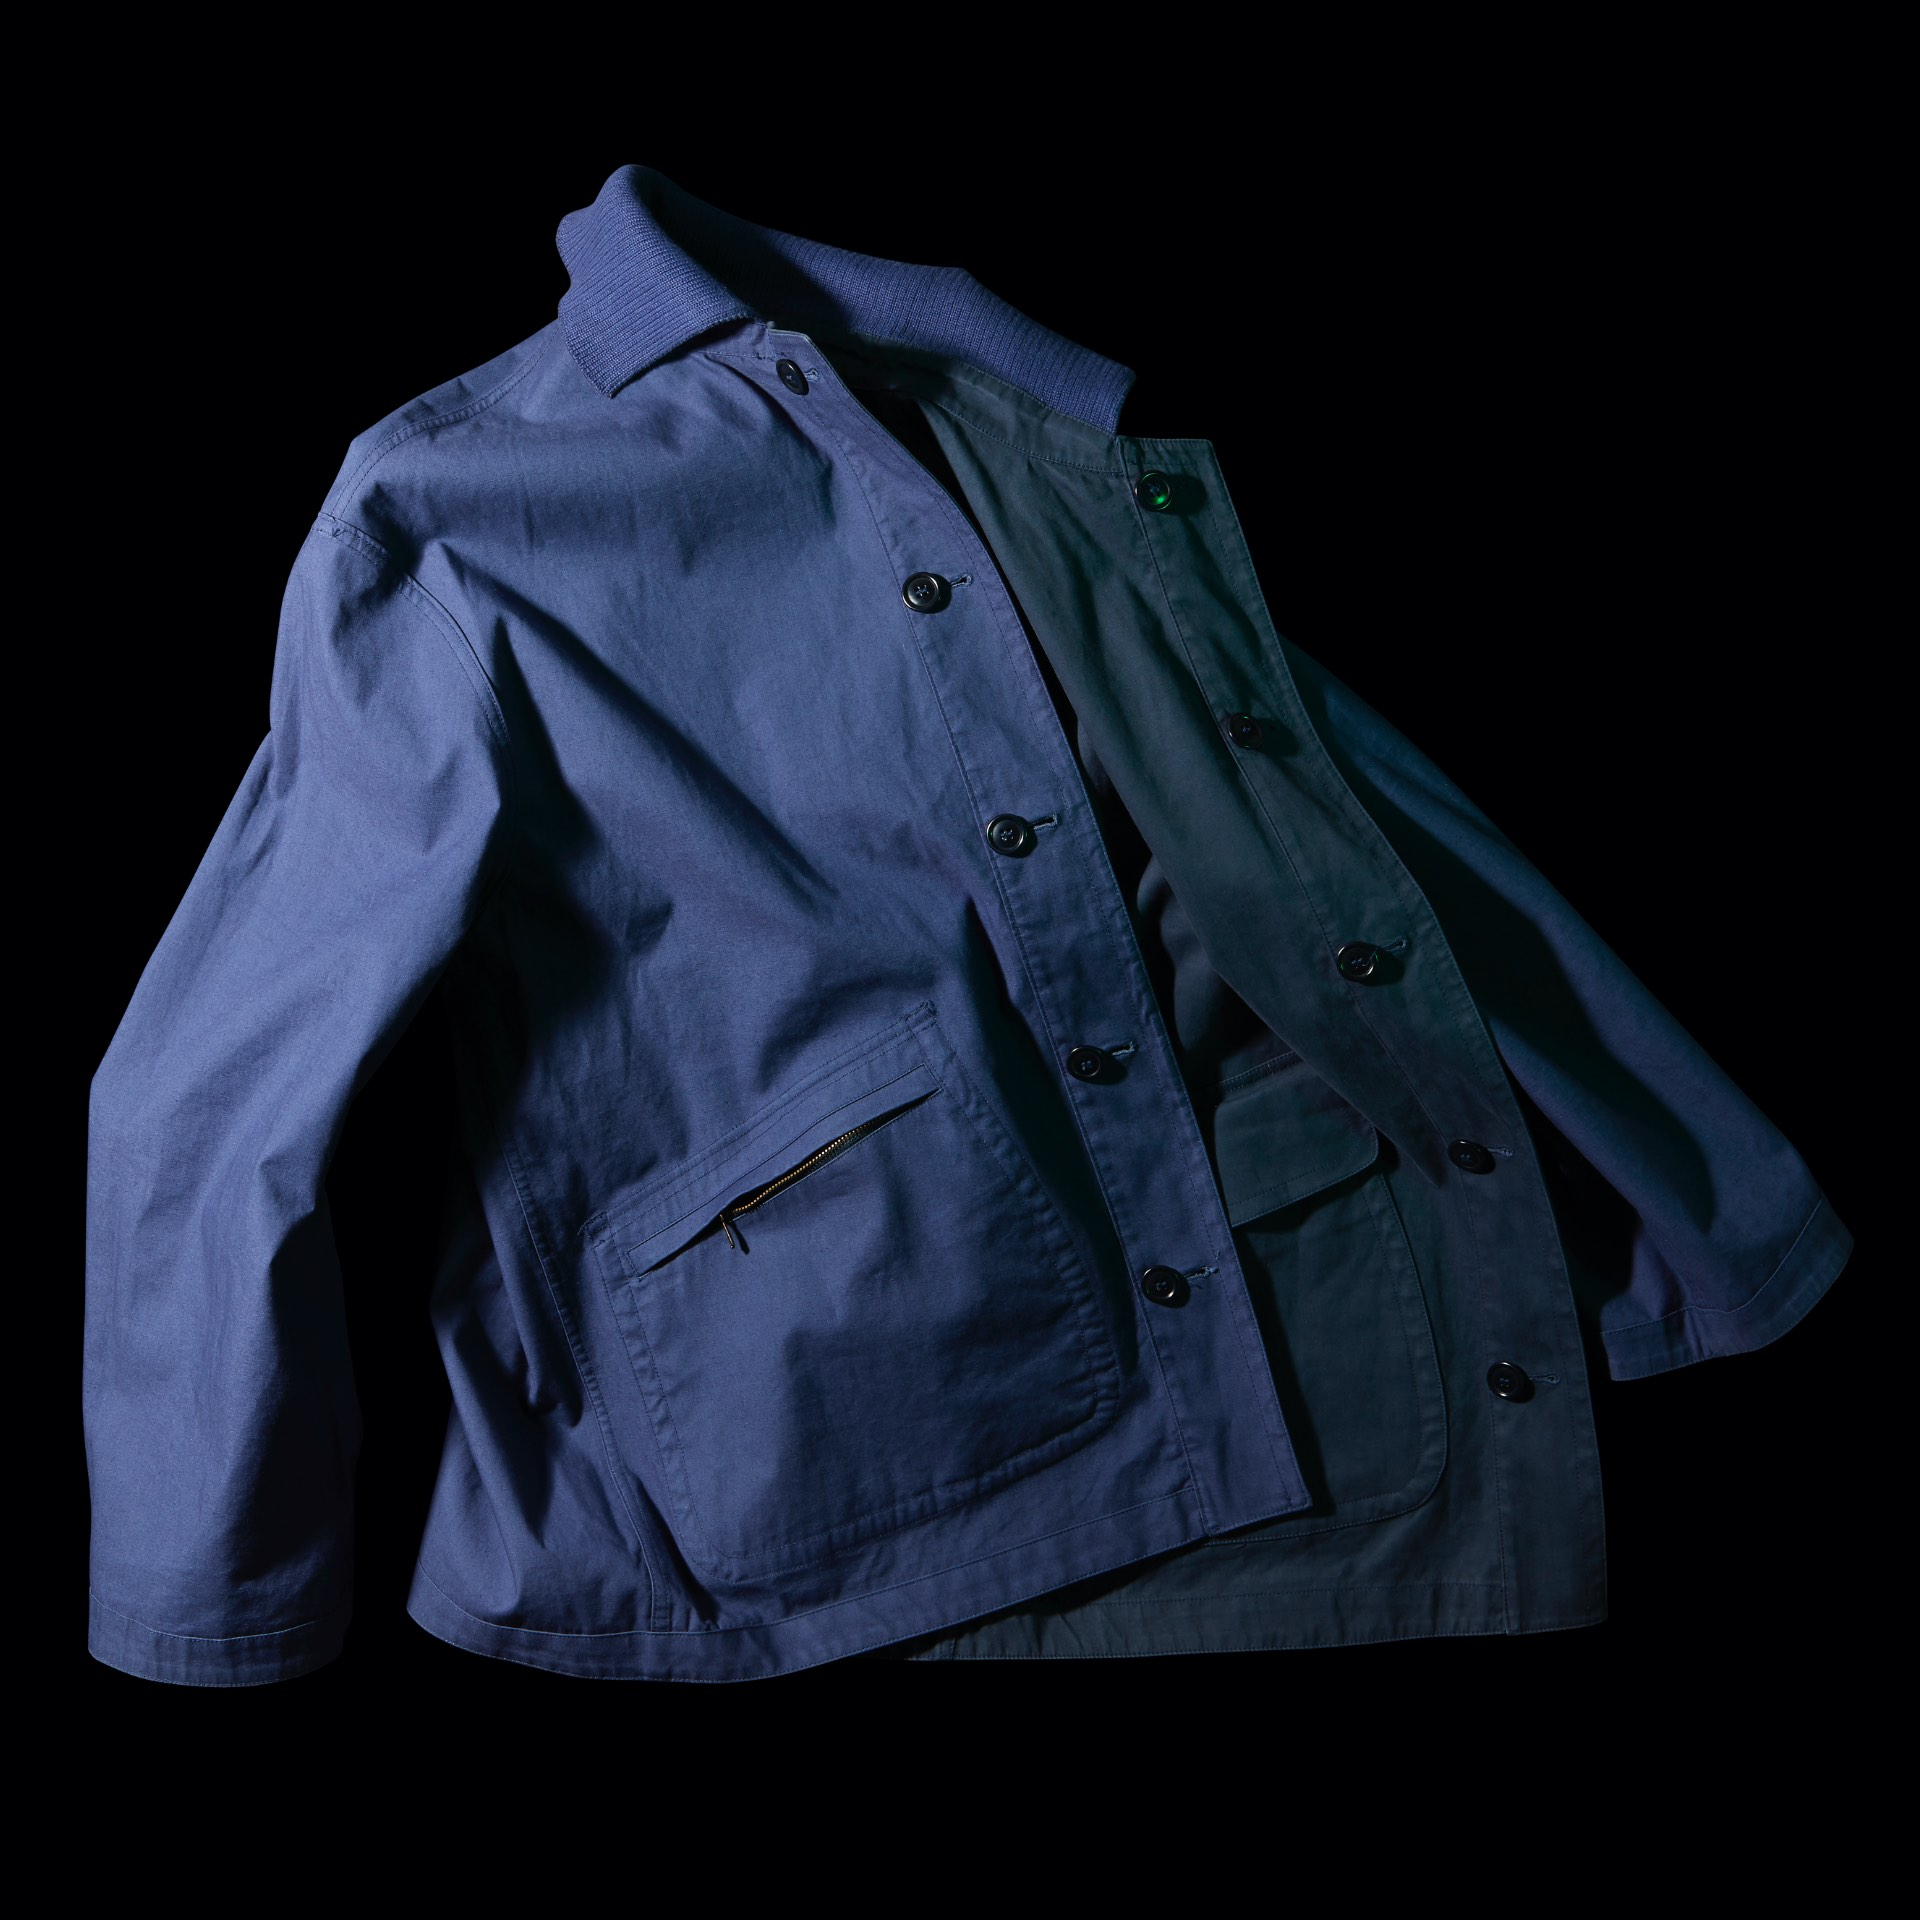 blue C.P. Jacket on black background laid creatively with contrast light